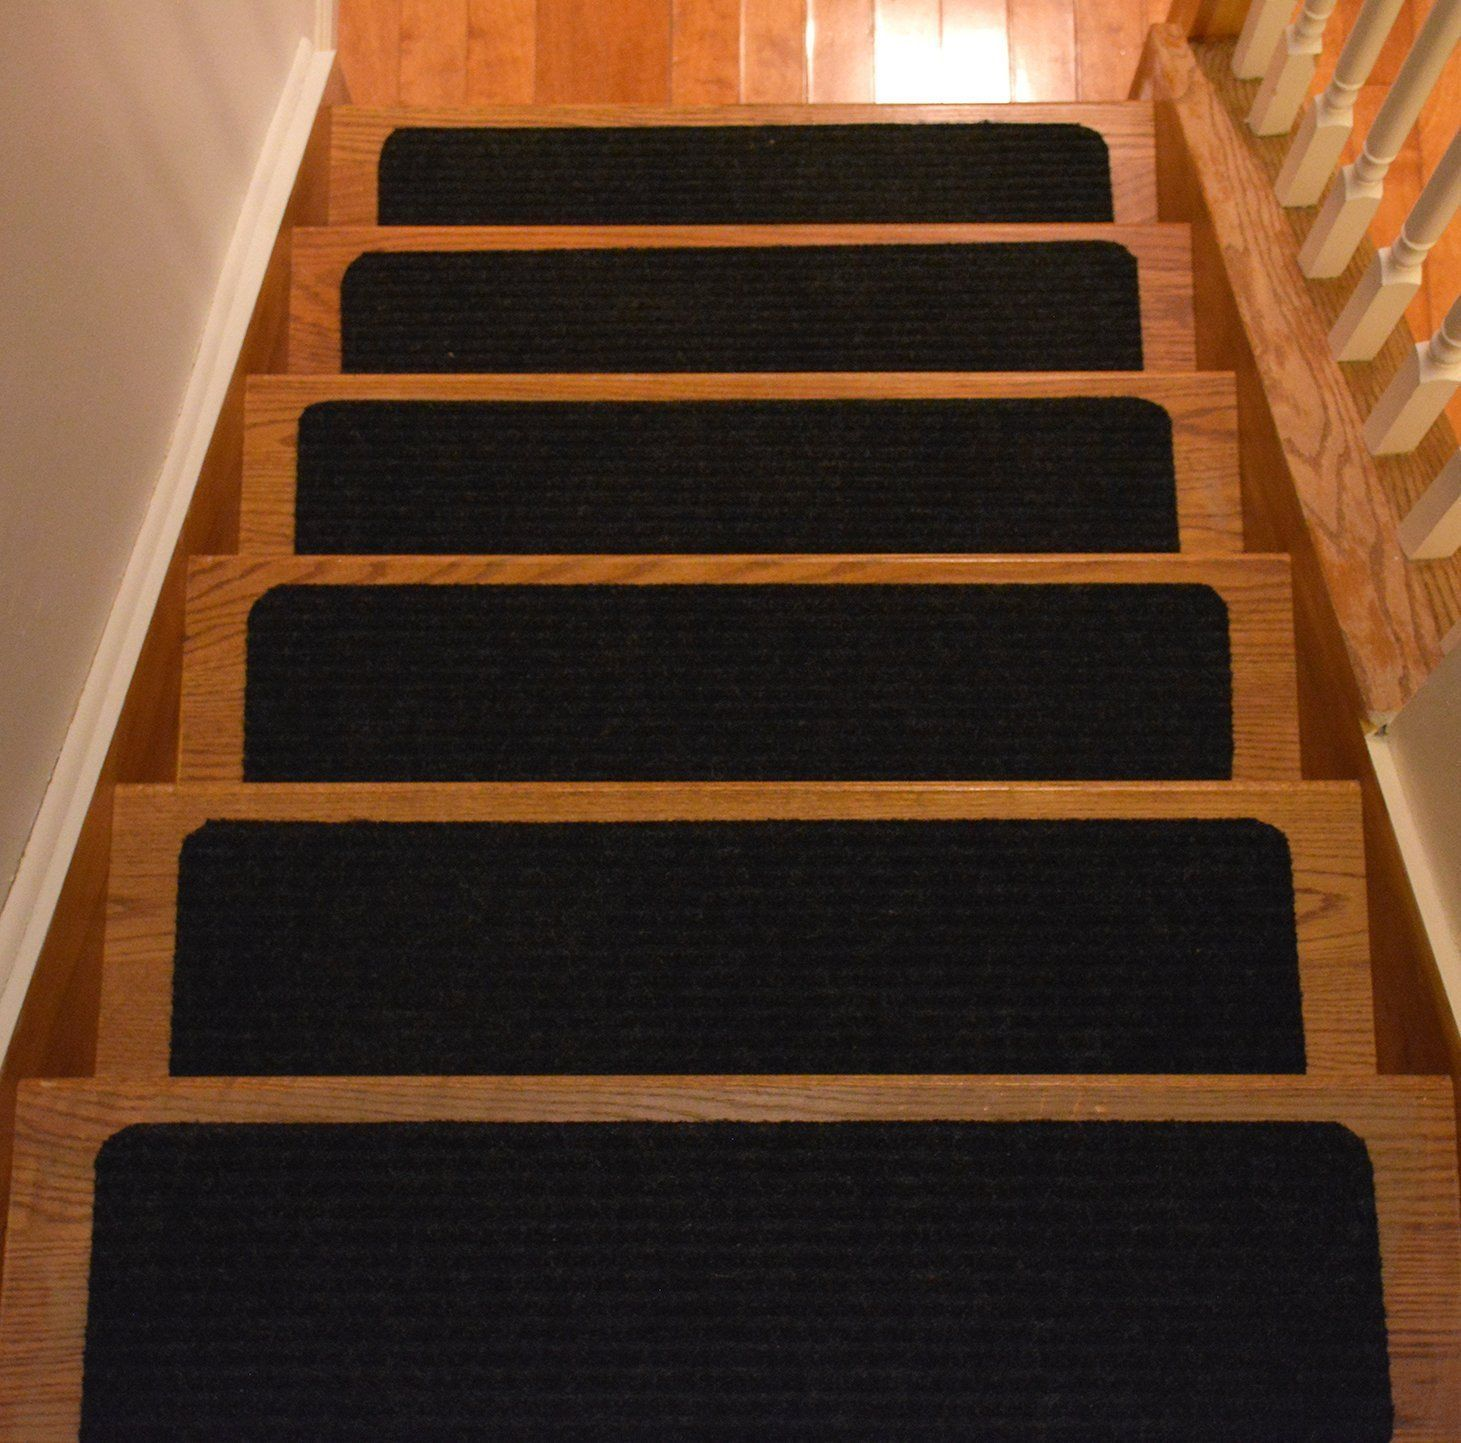 Robot Check Stair Tread Rugs Carpet Stair Treads Carpet Stairs | 8 Inch Carpet Stair Treads | Bullnose Carpet | Wood Stairs | Rubber Backing | Mat | Non Slip Stair